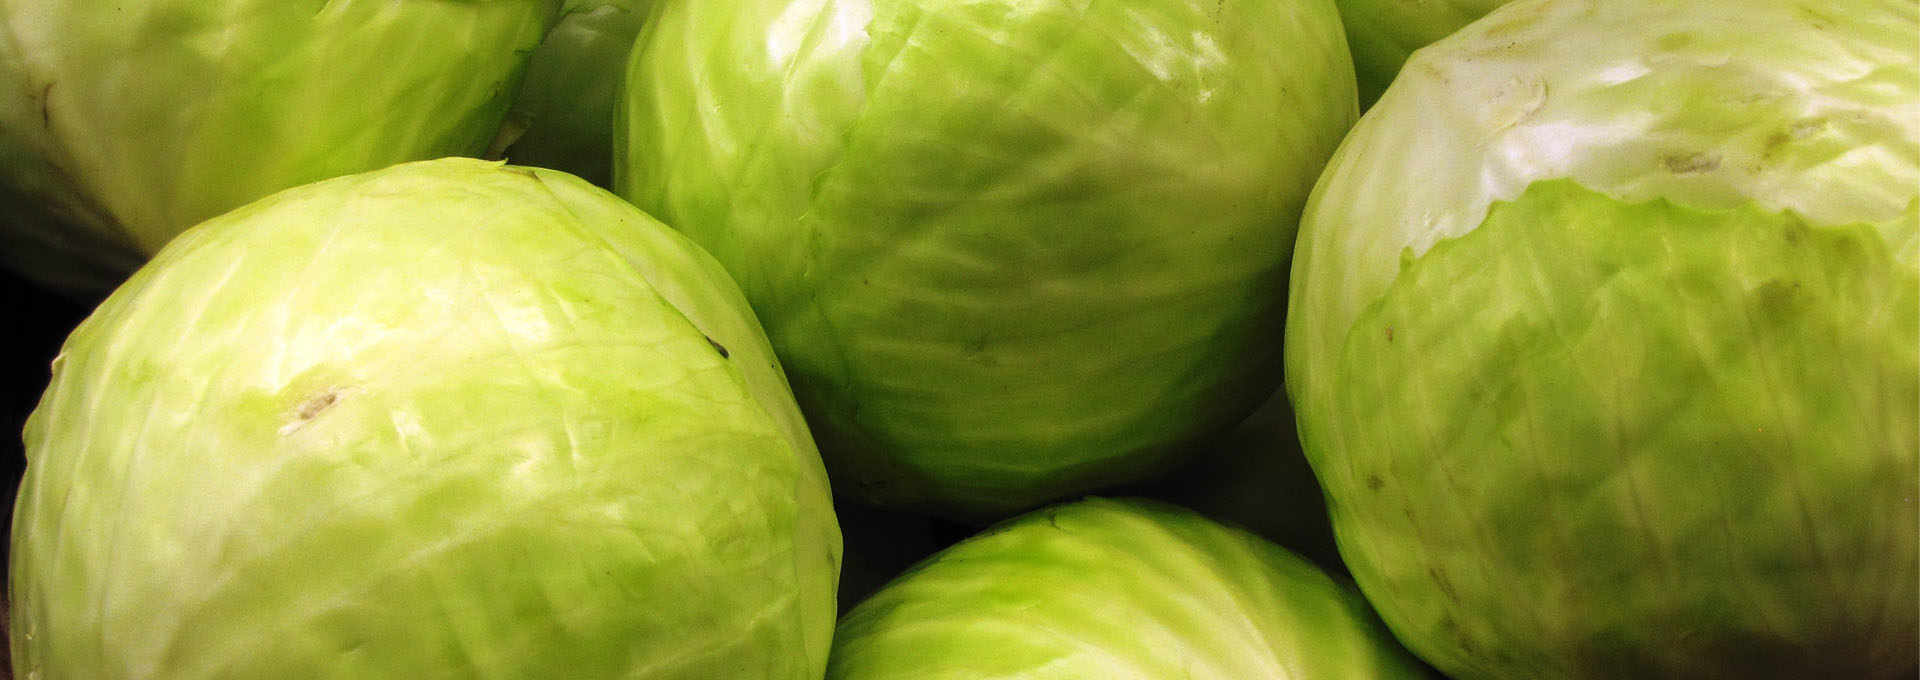 Cabbage and Turnip: Healthy, Nutritious and Delicious